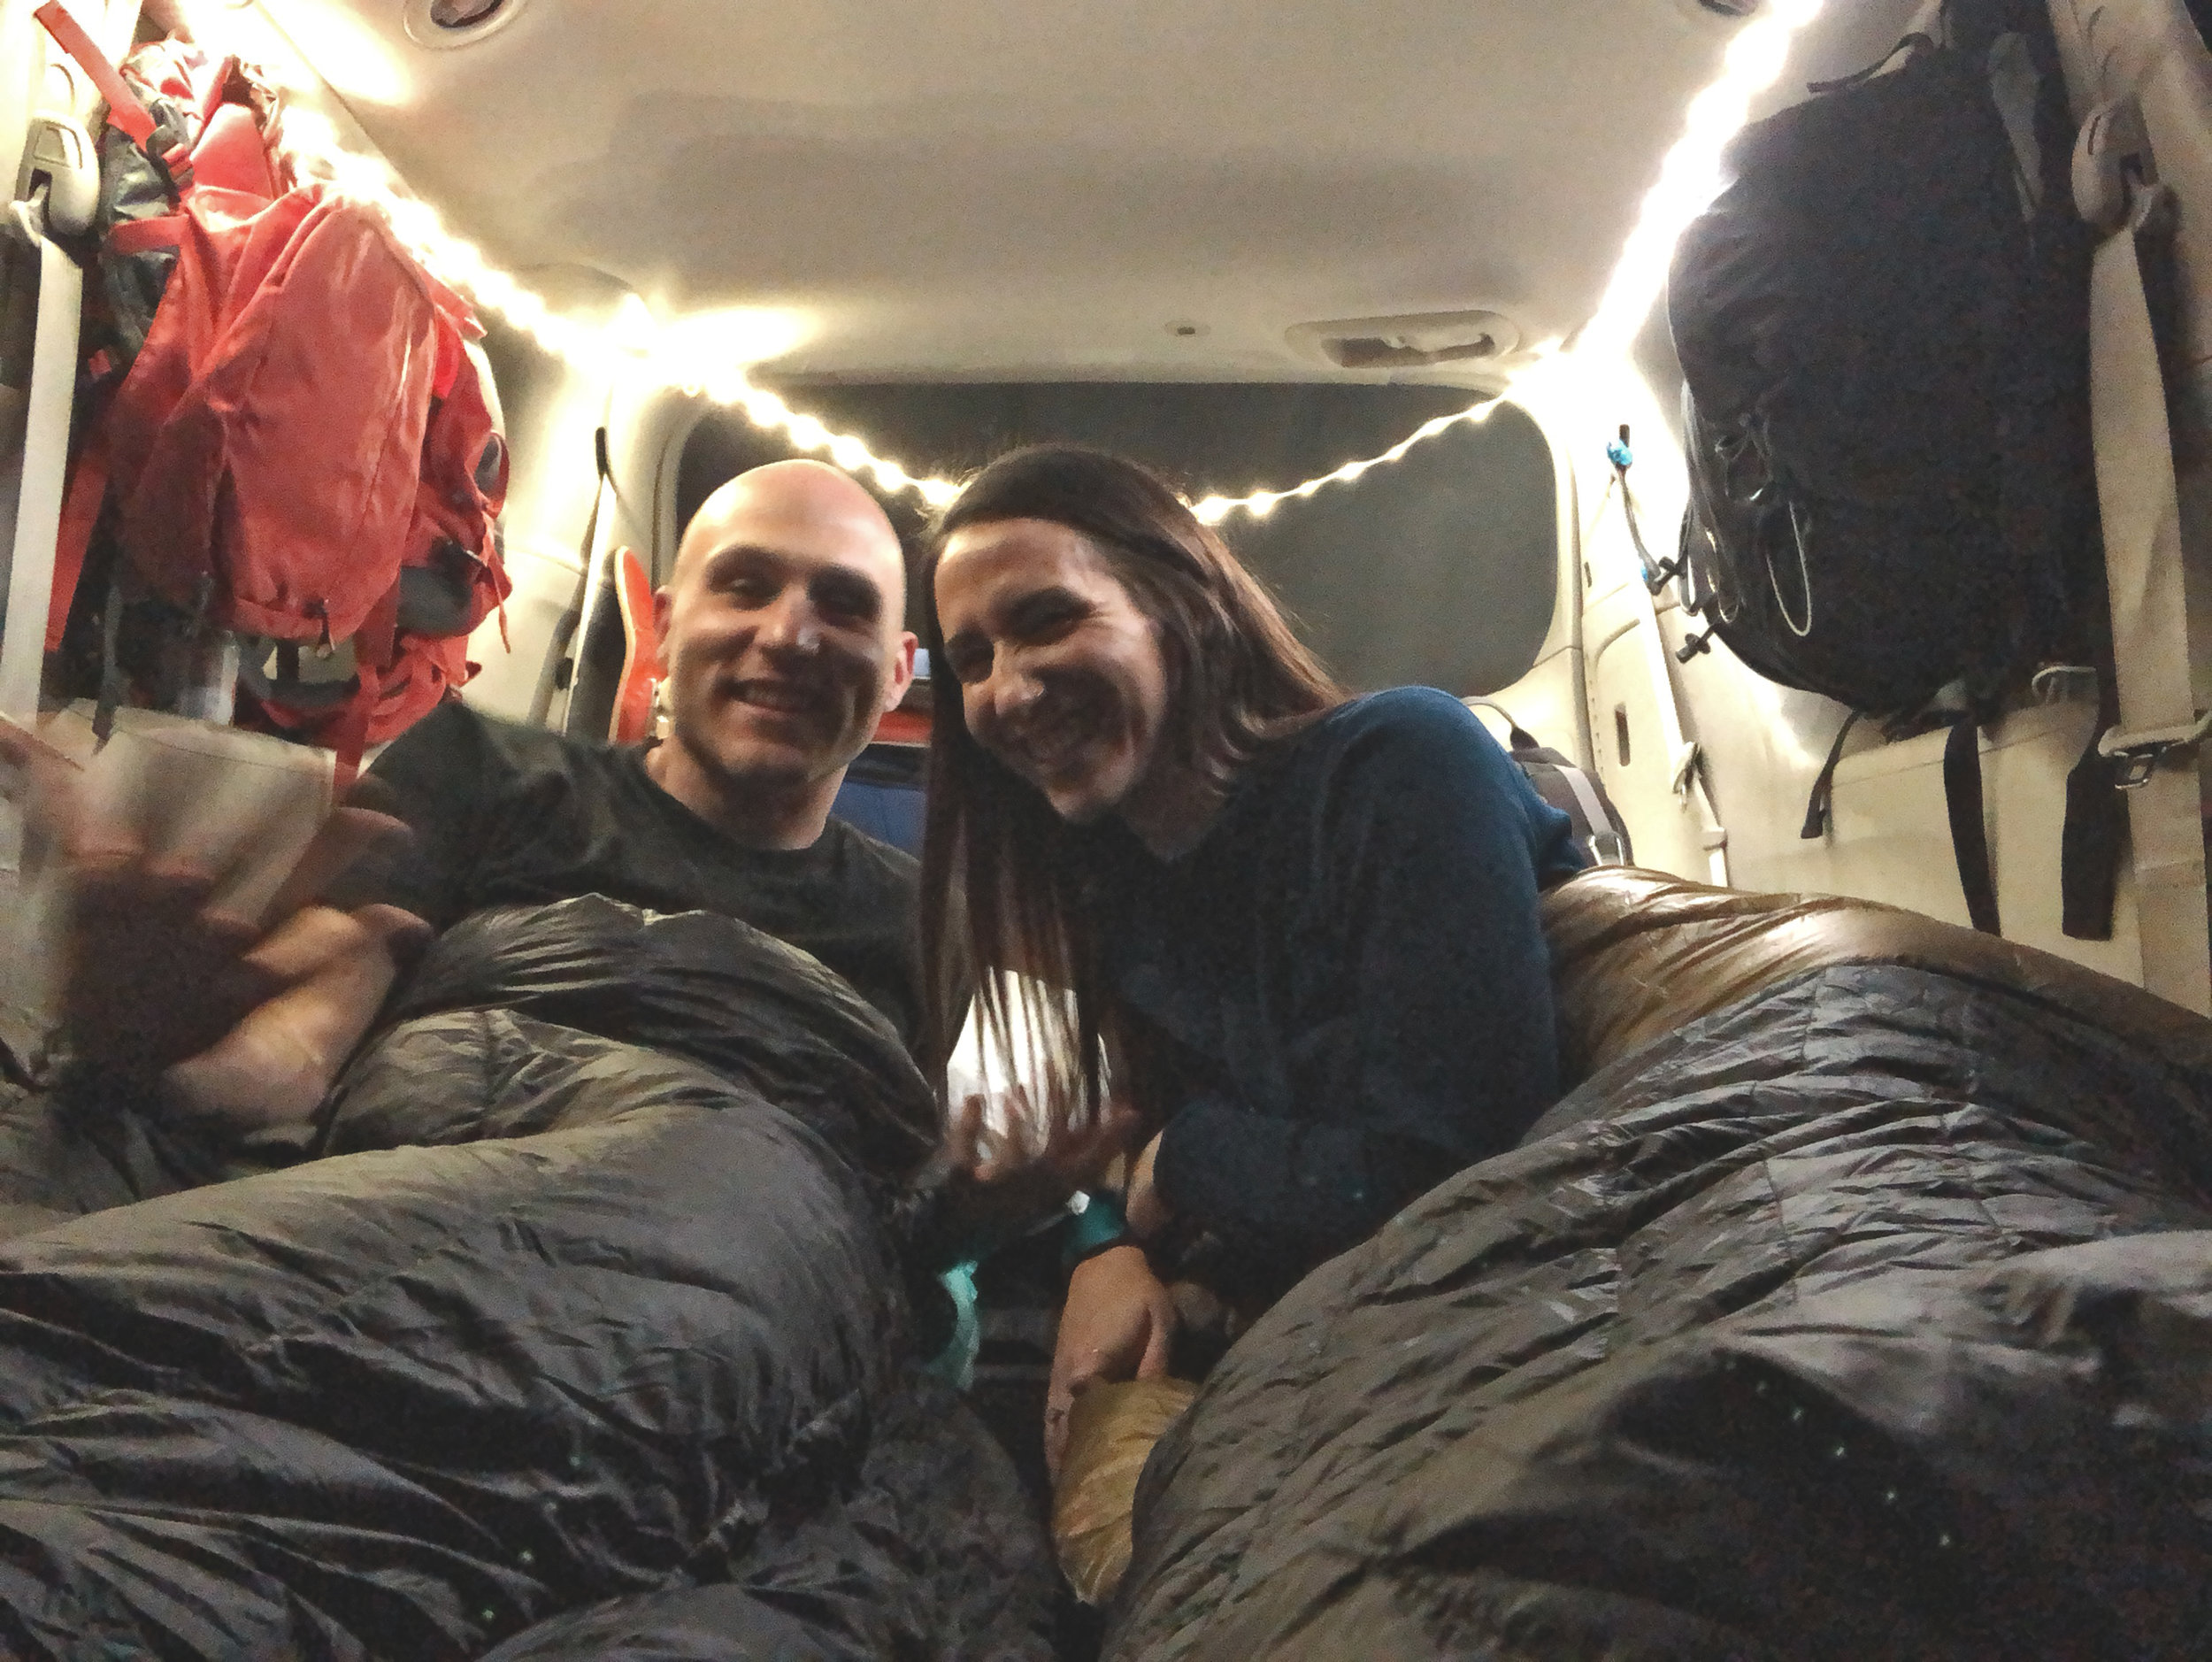 DIY rental van conversion to camper van sedona arizona